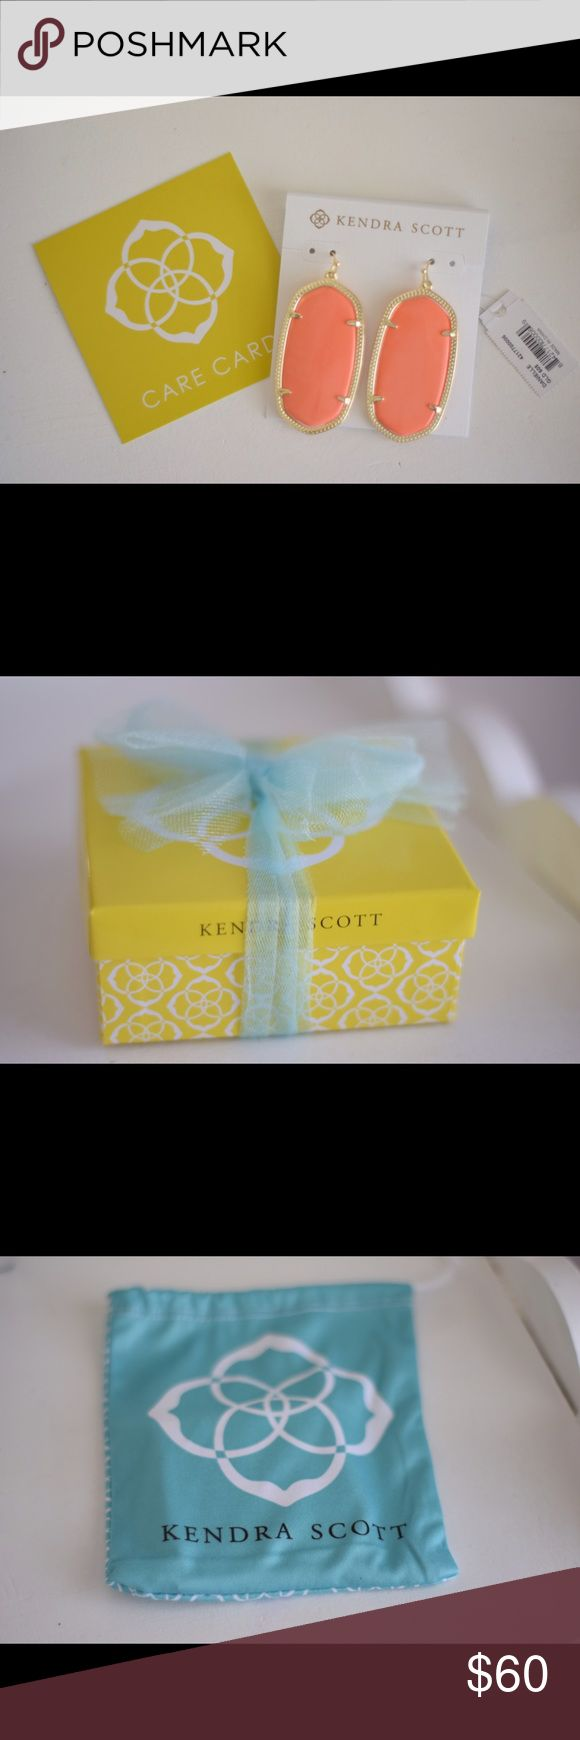 Kendra Scott Danielle Earrings- Coral/Gold Brand new Kendra Scott Danielle Earrings in Coral with Gold finishes- never worn with tags! Includes original gift packaging! Kendra Scott Jewelry Earrings